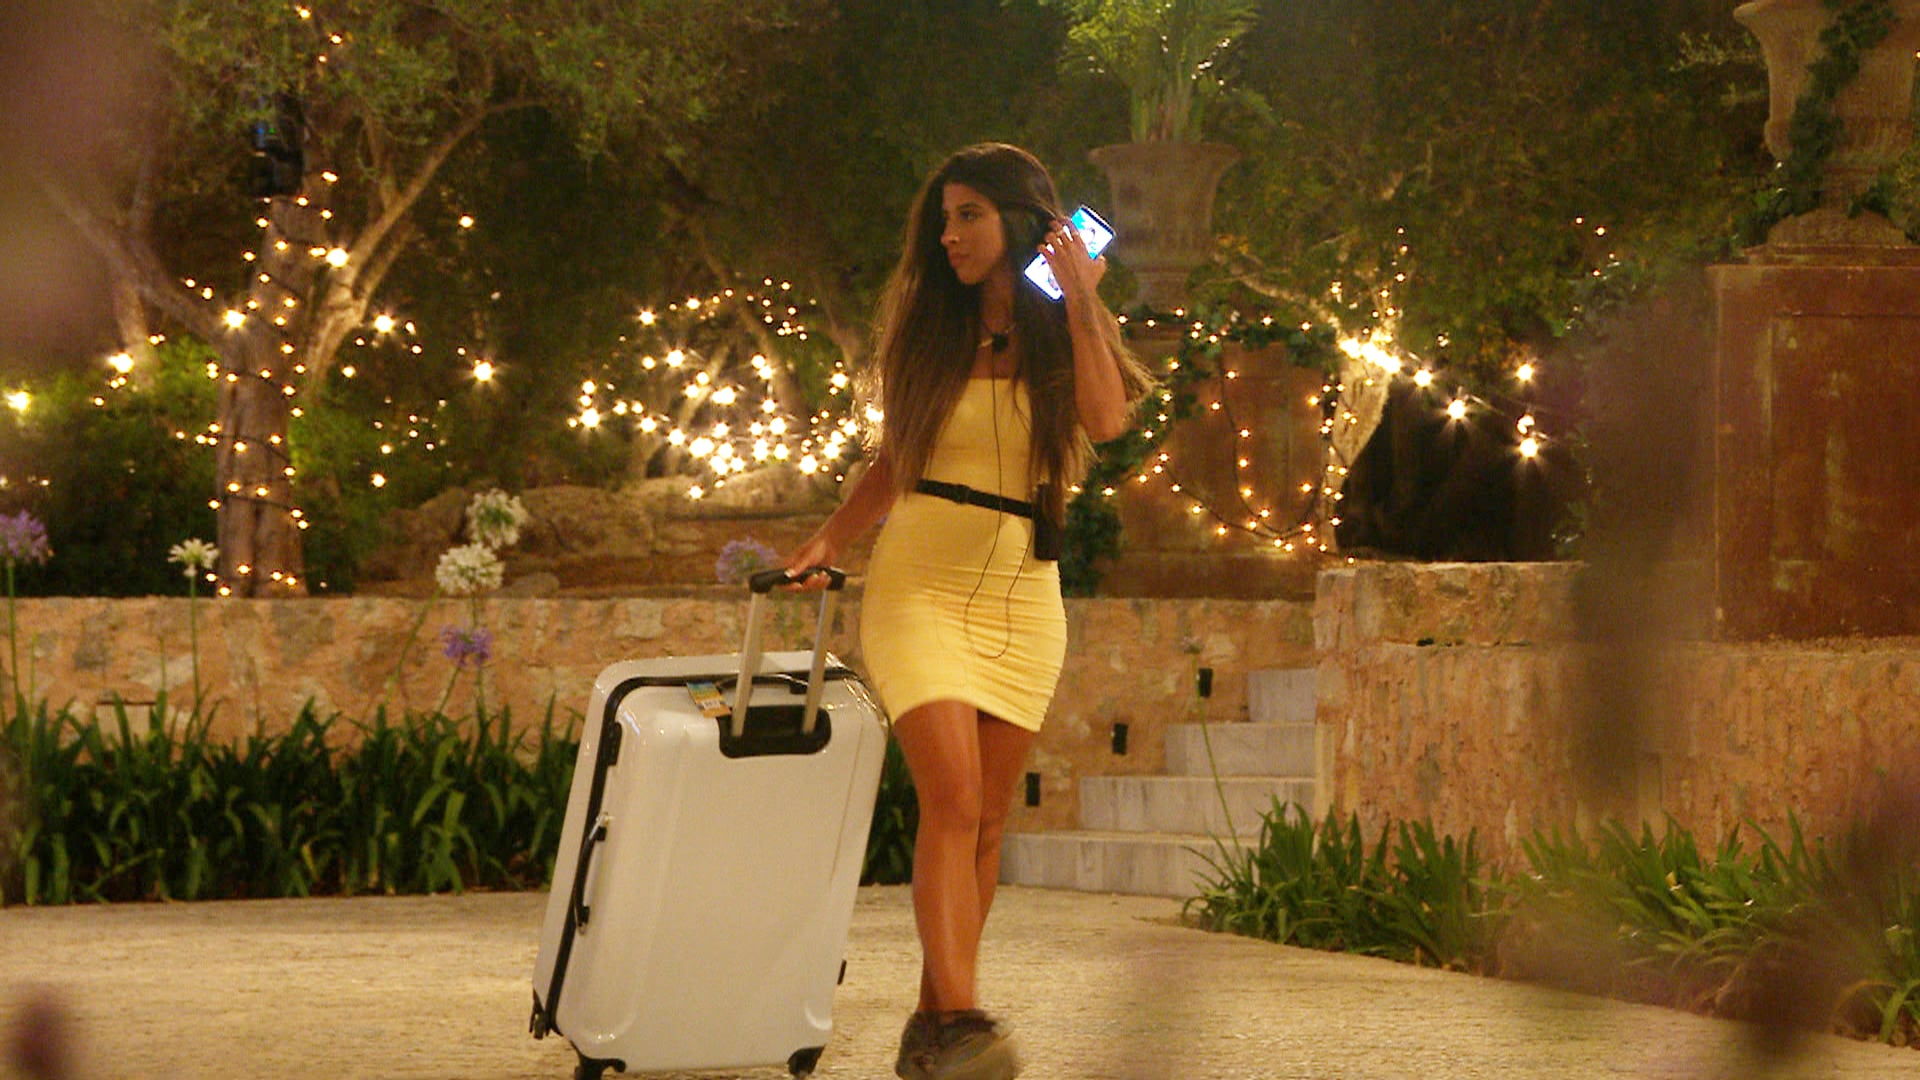 From Lifted EntertainmentLove Island: SR7: Ep3 on ITV2 and ITV Hub new episodes are available the following morning on BritBoxPictured: Shannon leaves the villa.This photograph is (C) ITV Plc and can only be reproduced for editorial purposes directly in connection with the programme or event mentioned above, or ITV plc. Once made available by ITV plc Picture Desk, this photograph can be reproduced once only up until the transmission [TX] date and no reproduction fee will be charged. Any subsequent usage may incur a fee. This photograph must not be manipulated [excluding basic cropping] in a manner which alters the visual appearance of the person photographed deemed detrimental or inappropriate by ITV plc Picture Desk.  This photograph must not be syndicated to any other company, publication or website, or permanently archived, without the express written permission of ITV Picture Desk. Full Terms and conditions are available on the website www.itv.com/presscentre/itvpictures/termsFor further information please contact:james.hilder@itv.com / 0207 157 3052